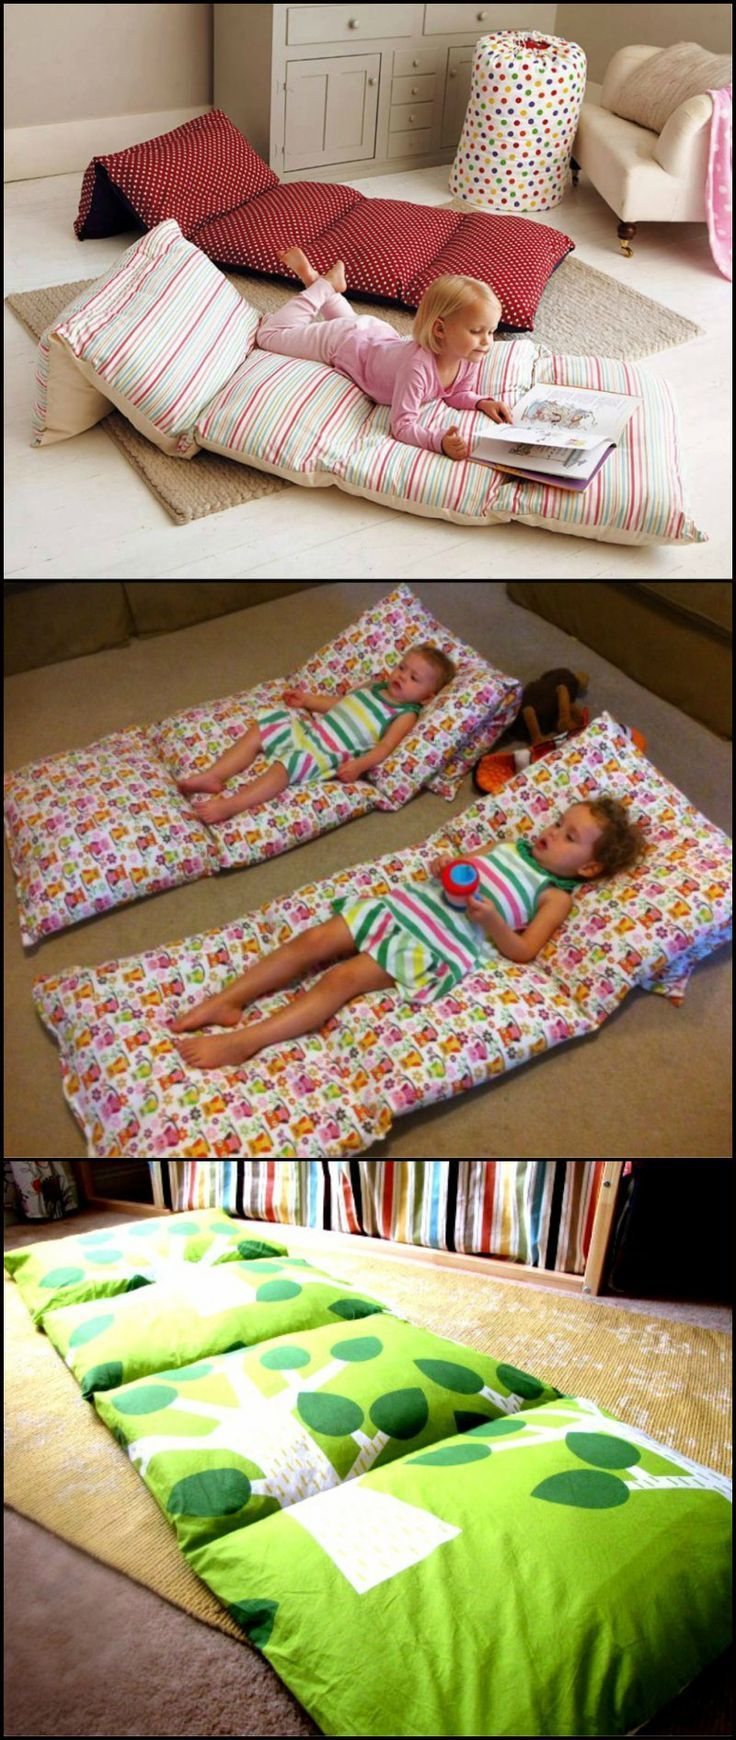 Home Design Ideas: Home Decorating Ideas For Cheap Home Decorating Ideas For Cheap If you have extra pillows in your home, you can turn them into a small bed for t...